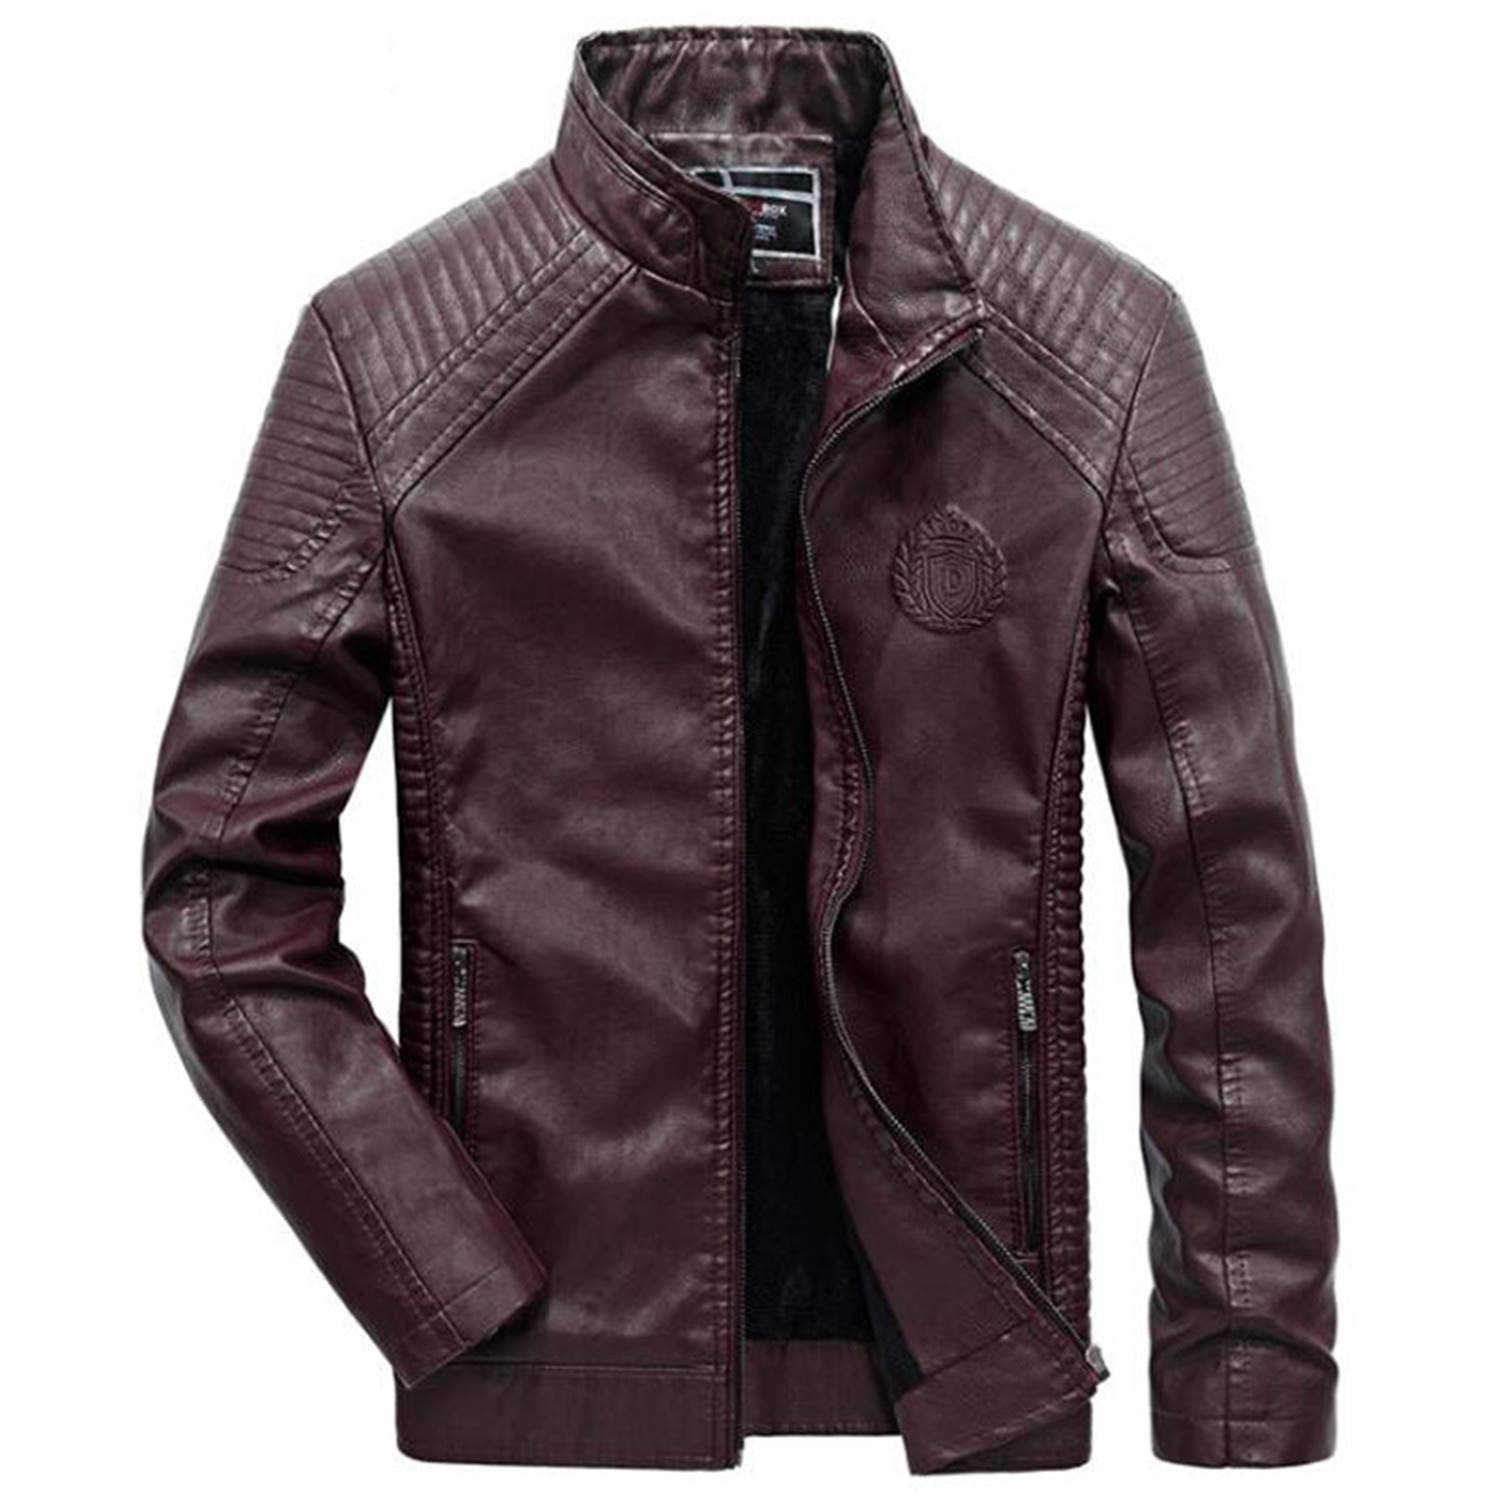 Amazon.com: 2019 Warm Style Leather JacketSlim Fit Pu Biker ...